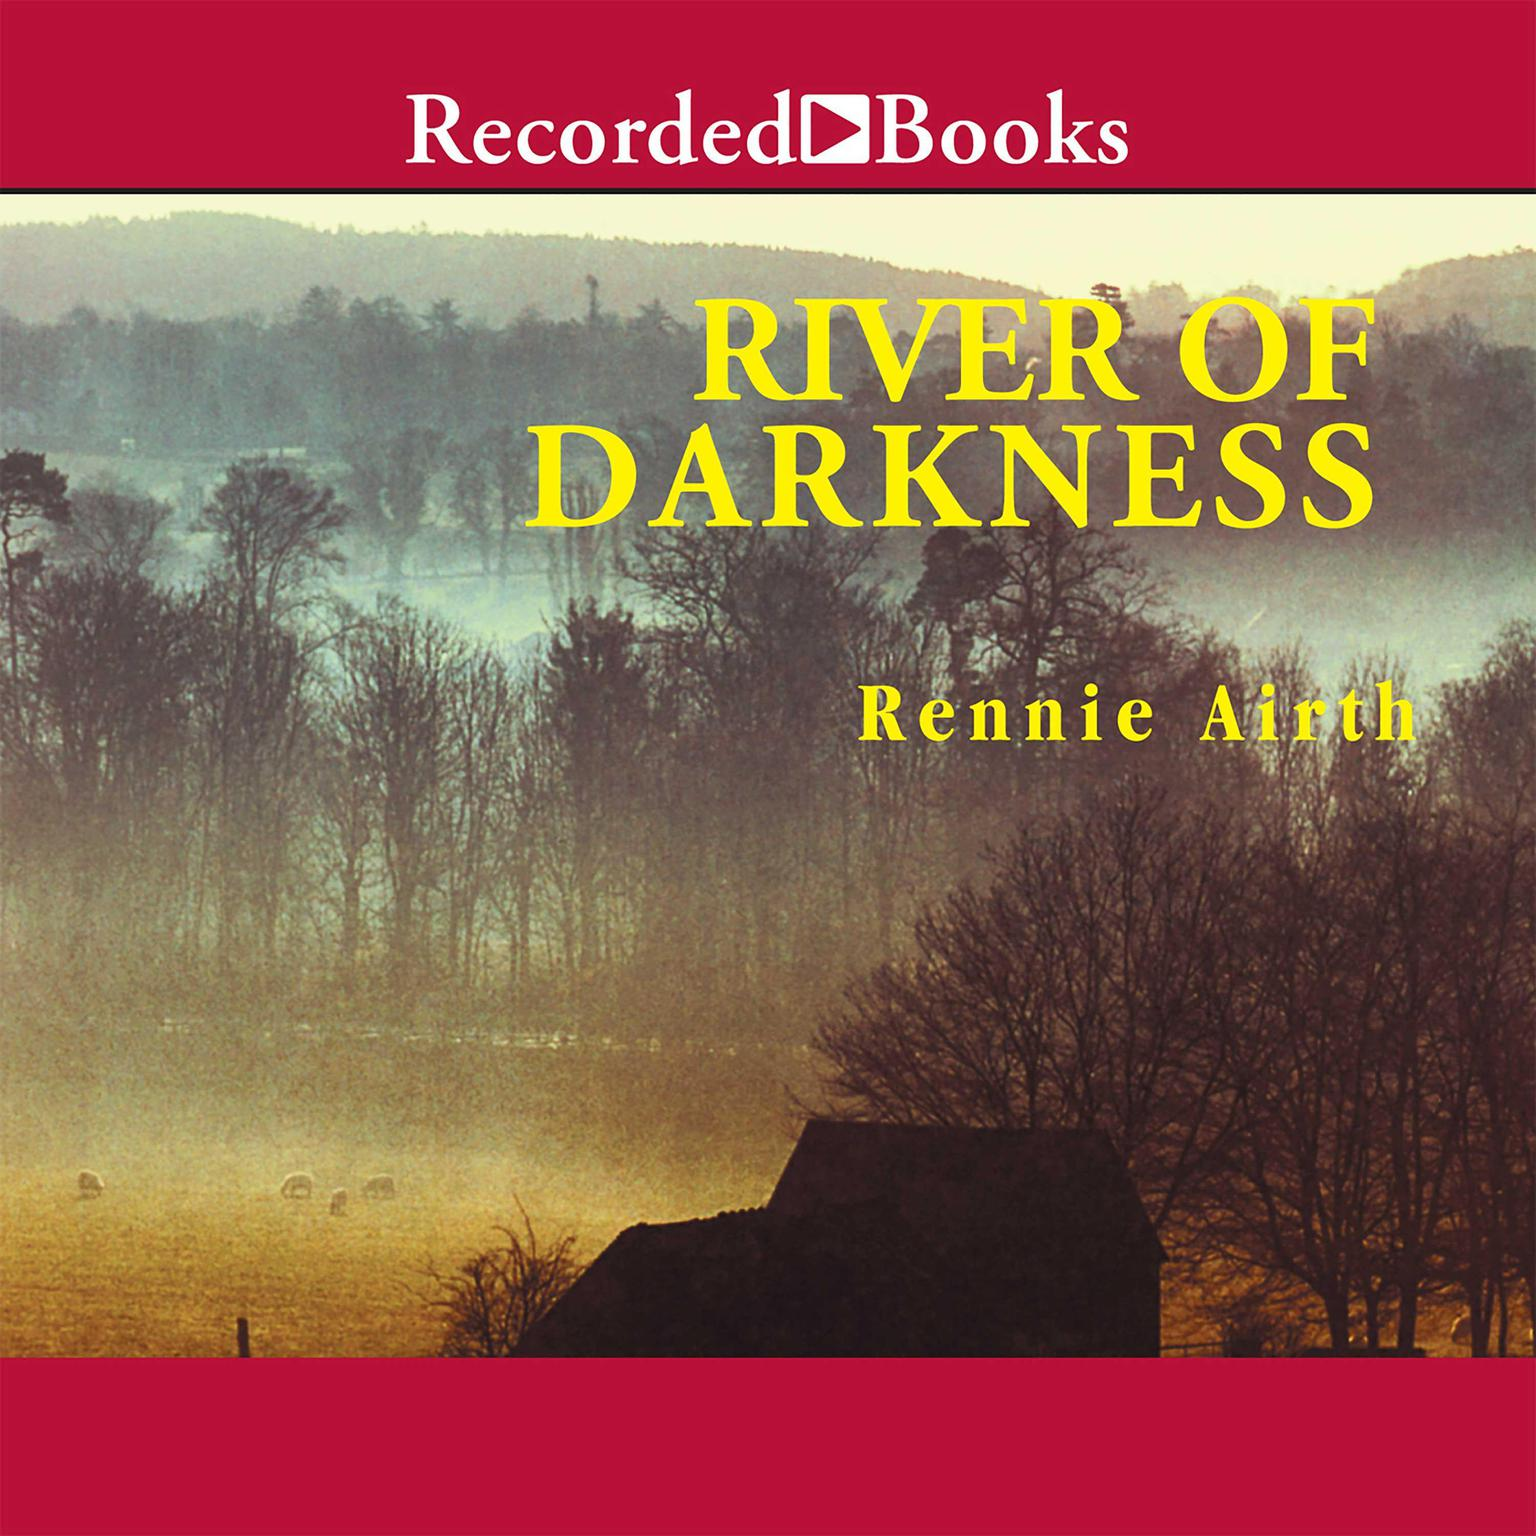 Printable River of Darkness Audiobook Cover Art